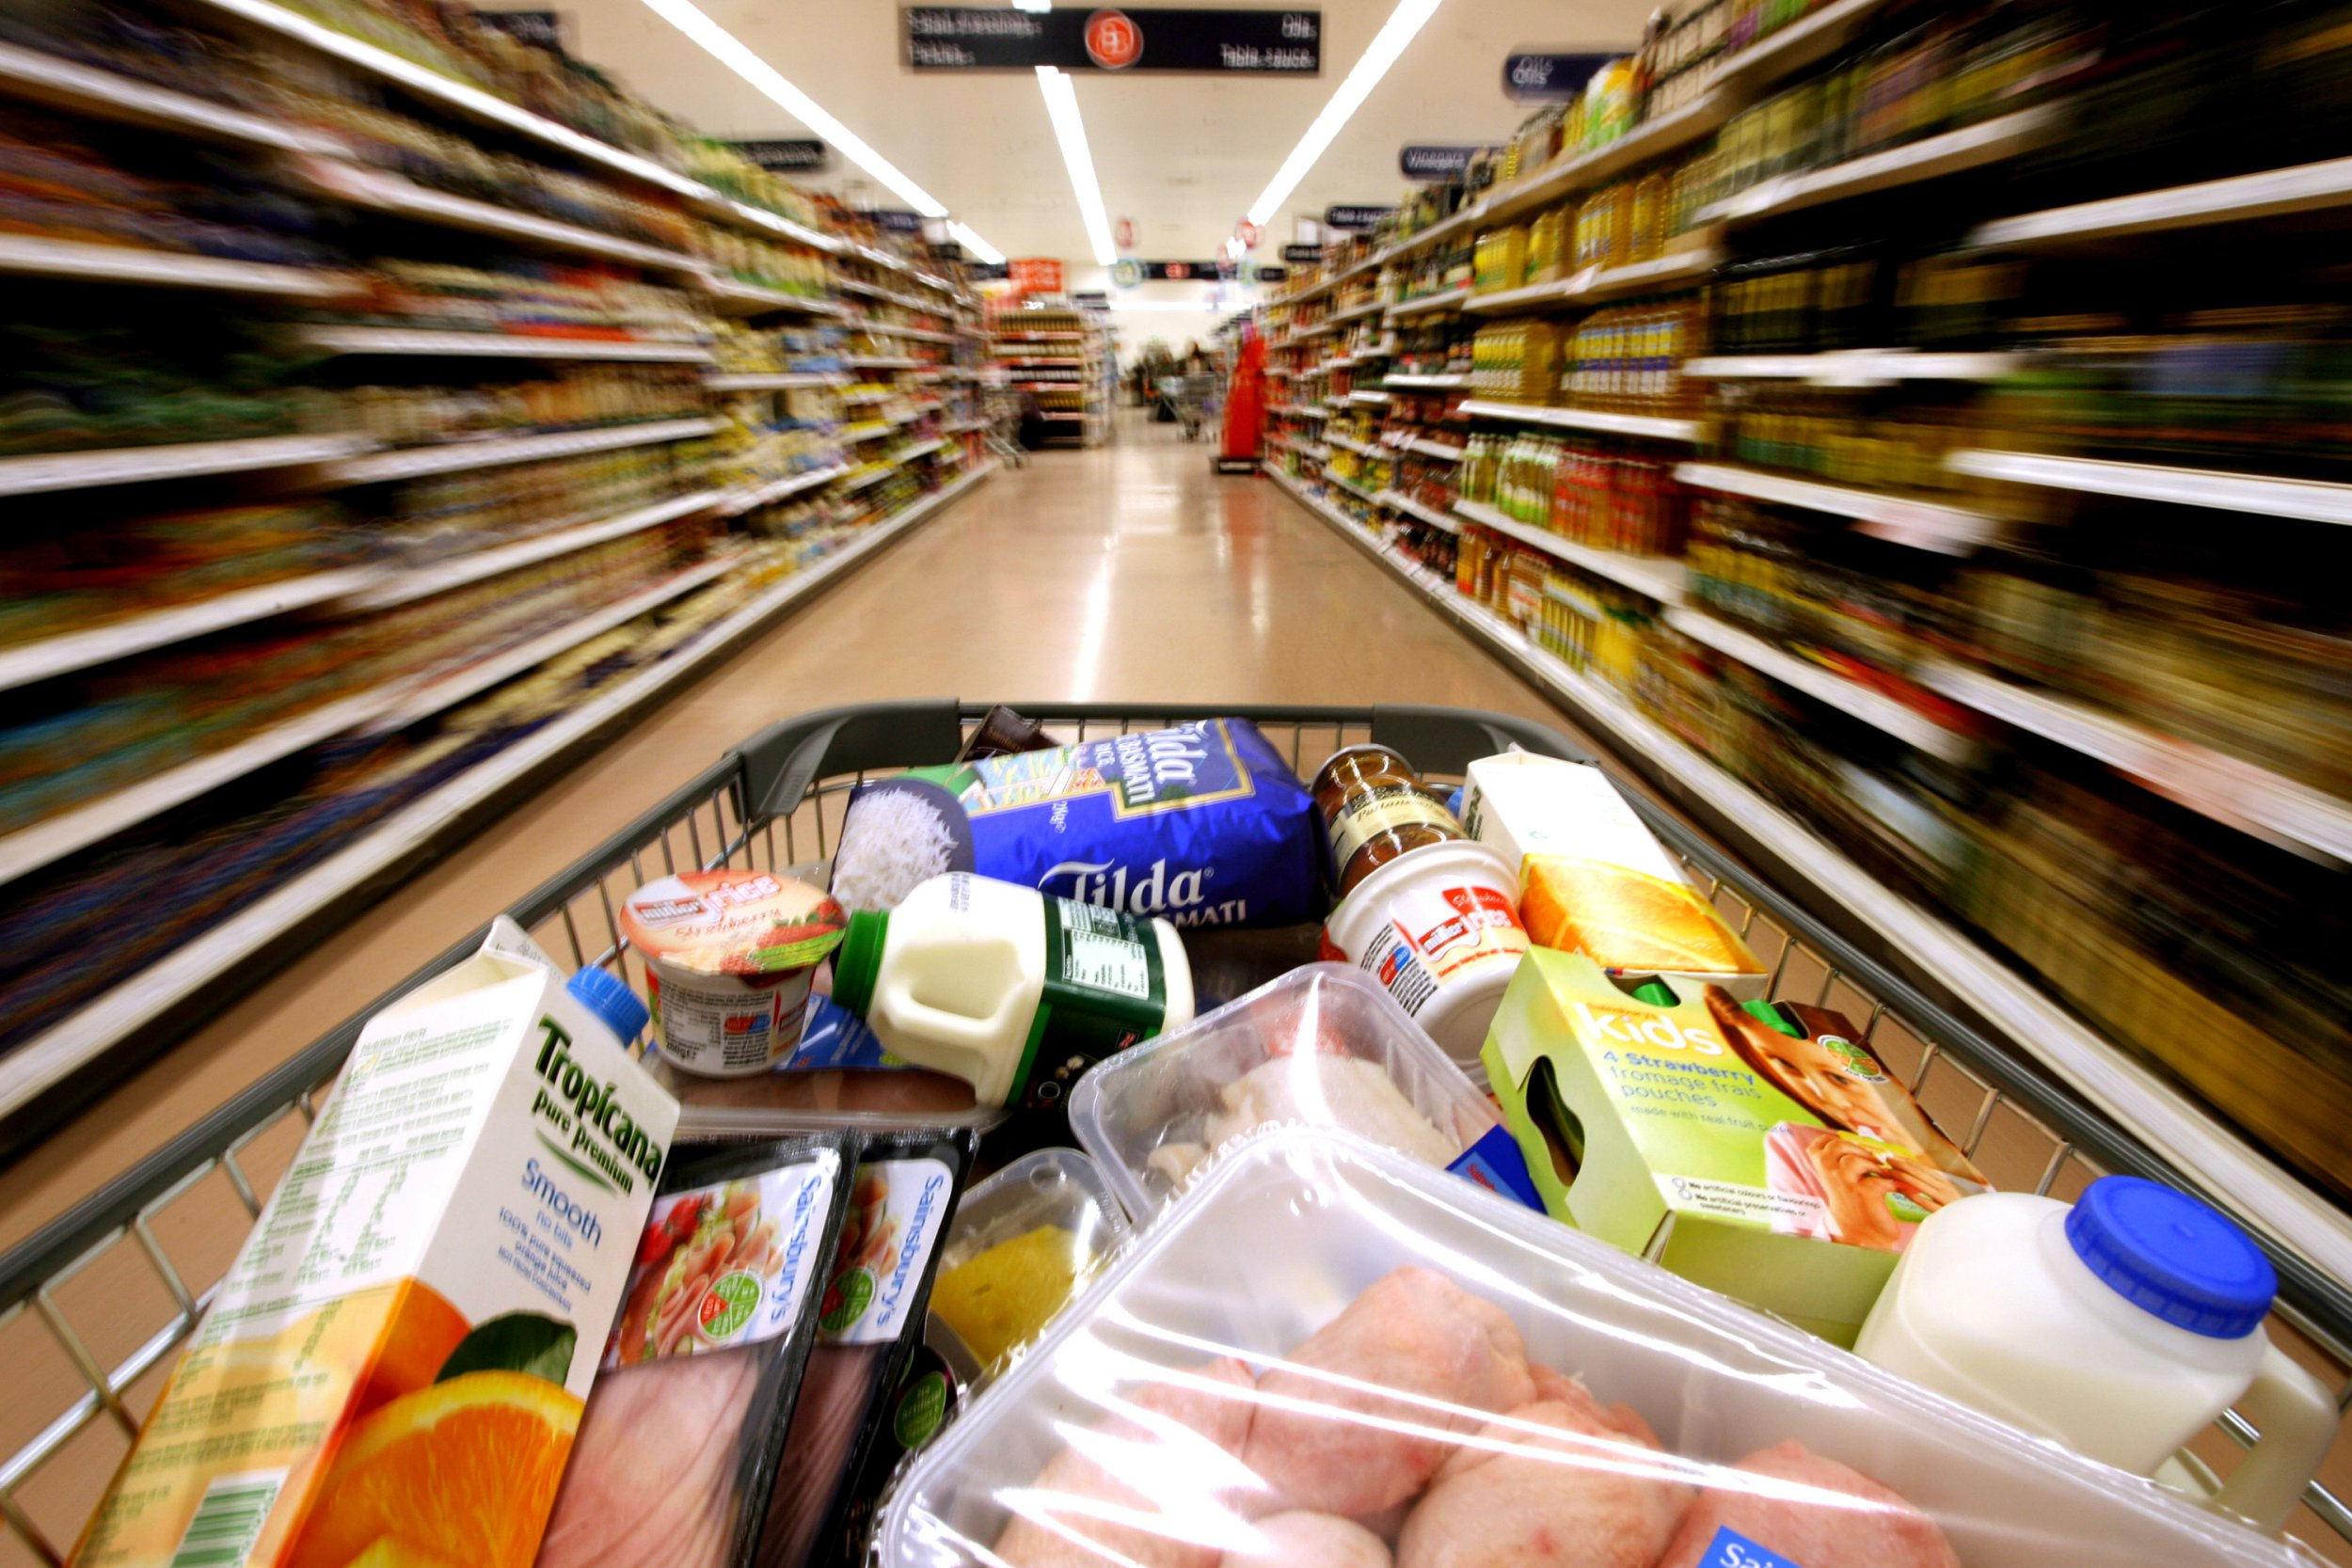 UNITED KINGDOM - FEBRUARY 29: A customer pushes a grocery cart through the food aisles at a Sainsbury's supermarket, in London Colney, U.K., on Friday, Feb. 29, 2008. J Sainsbury Plc, the third-largest U.K. supermarket chain, said sales growth slowed in the first quarter as higher living expenses in Britain cut into consumer spending on food and clothes. (Photo by Chris Ratcliffe/Bloomberg via Getty Images)